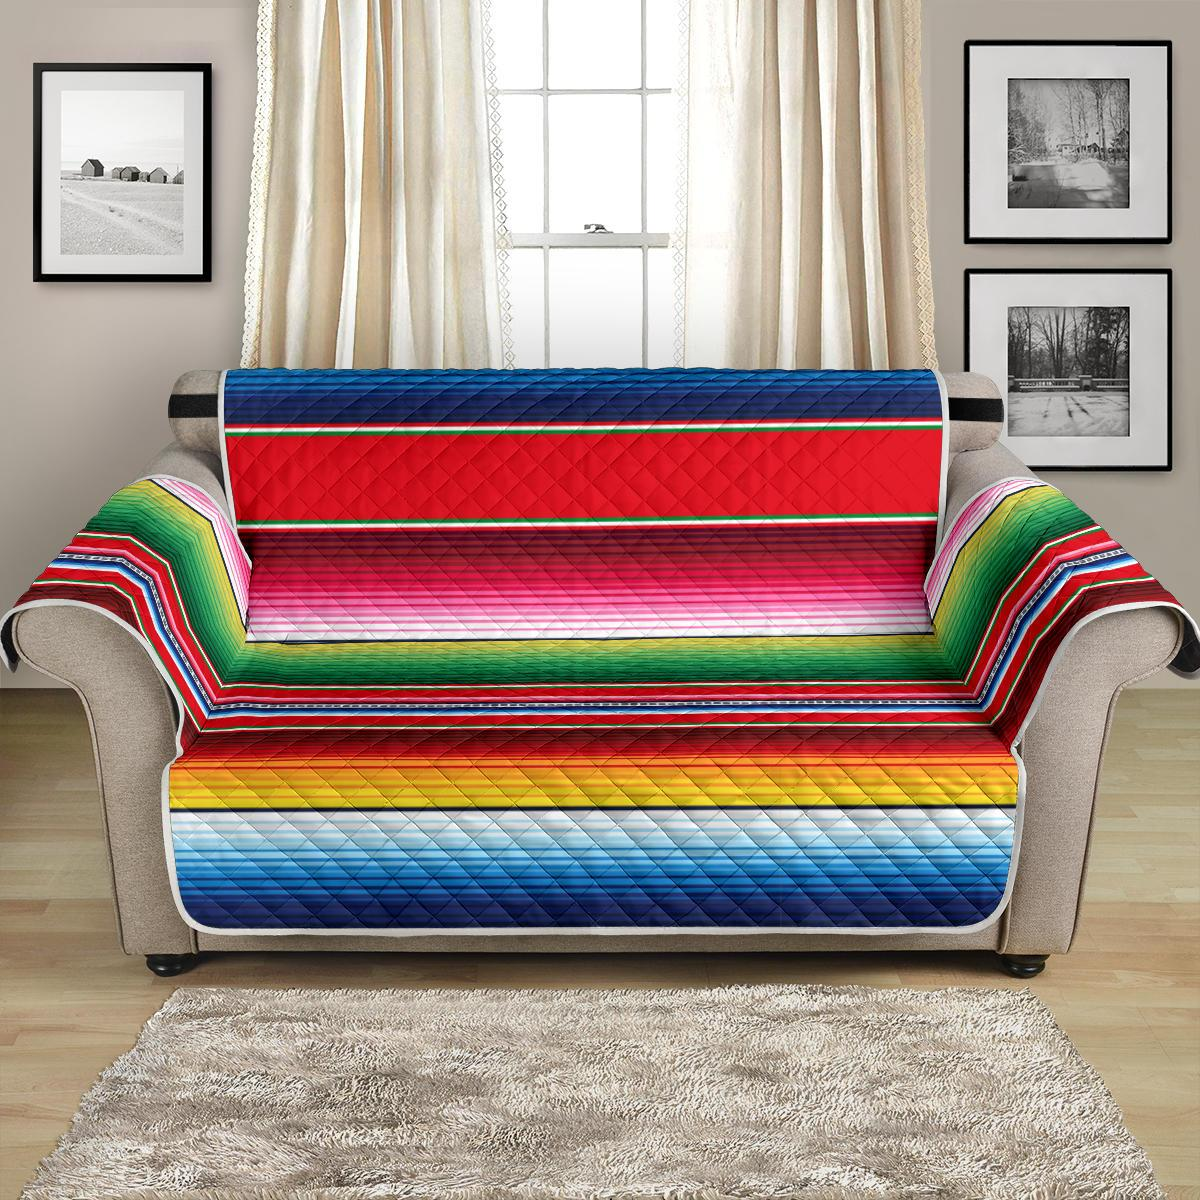 Serape Pattern Loveseat Couch Cover Protector